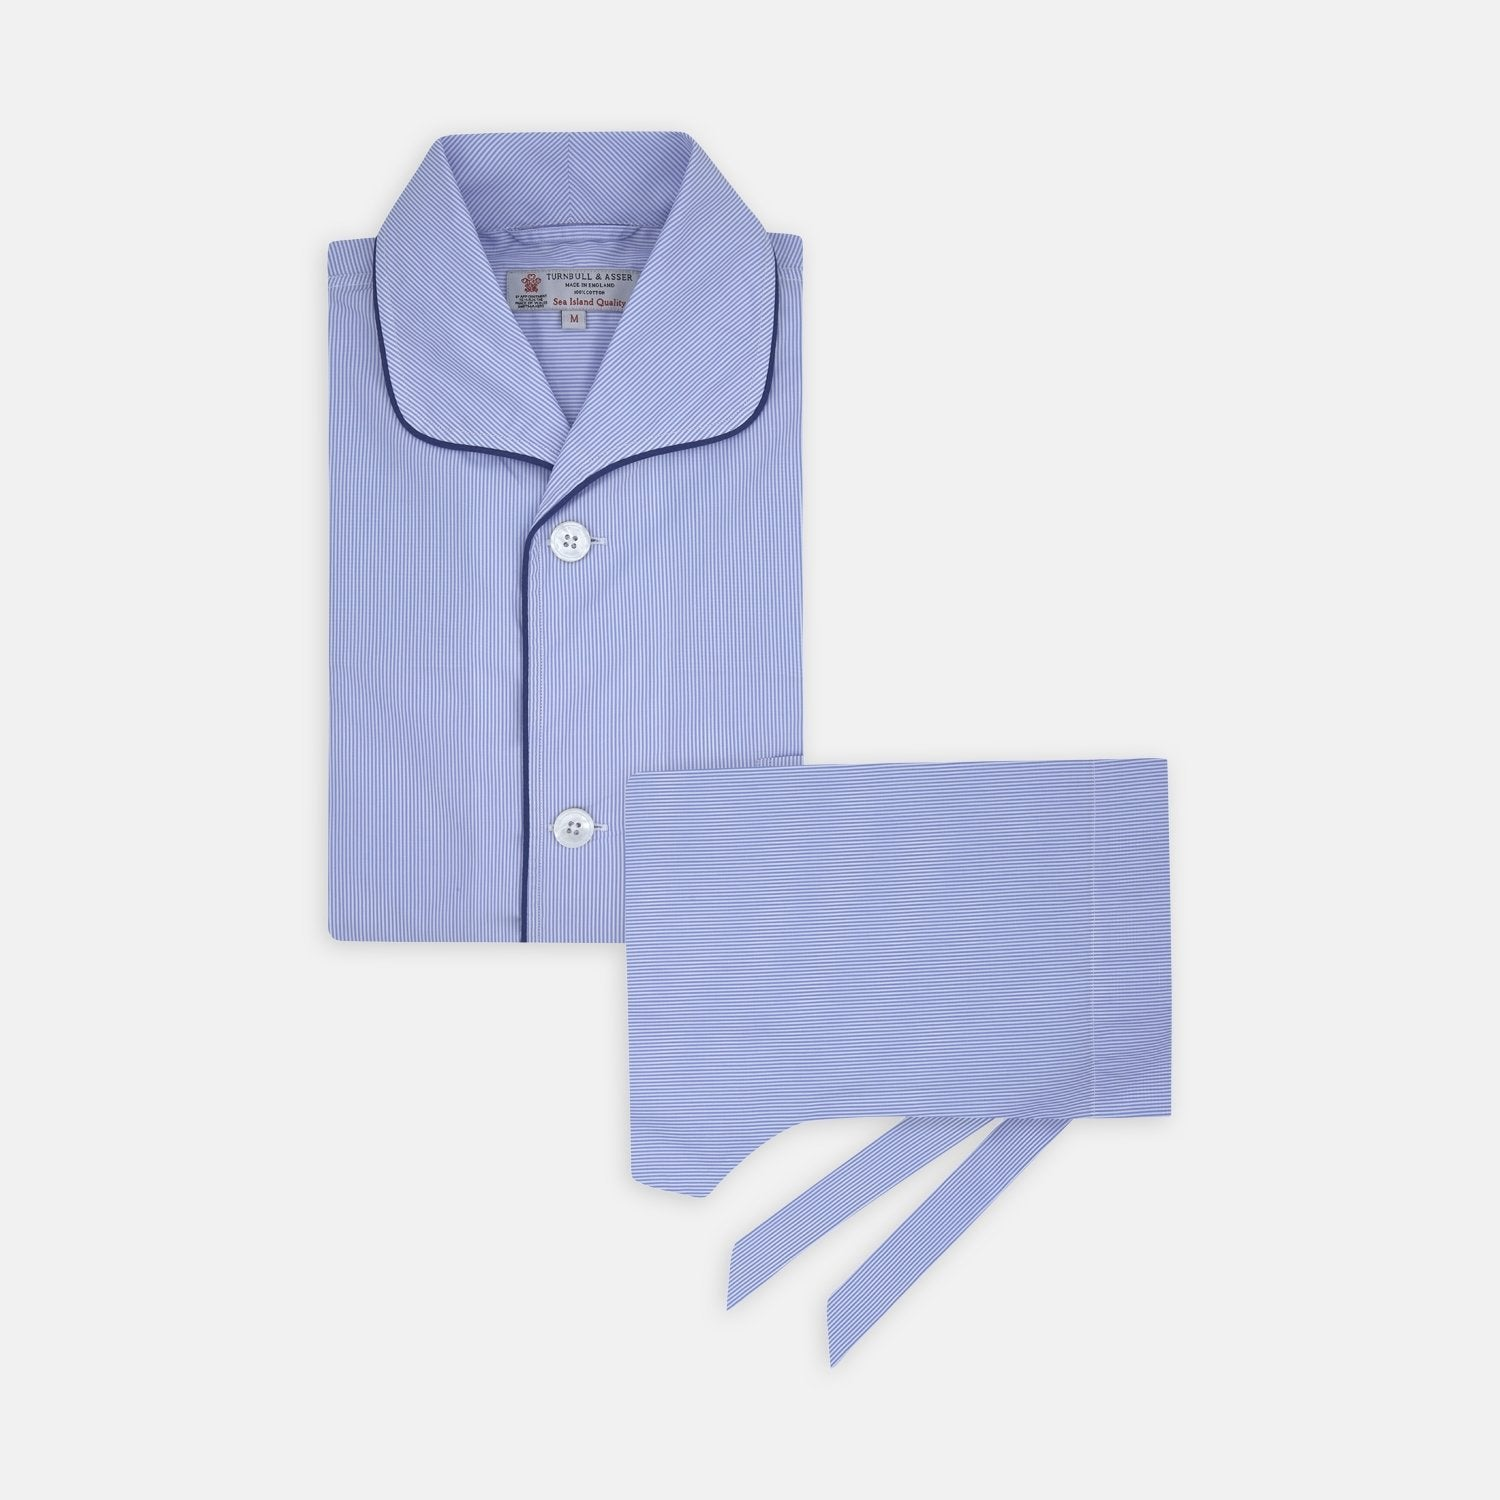 Blue Fine Stripe Piped Sea Island Quality Cotton Pyjama Set - M from Turnbull & Asser